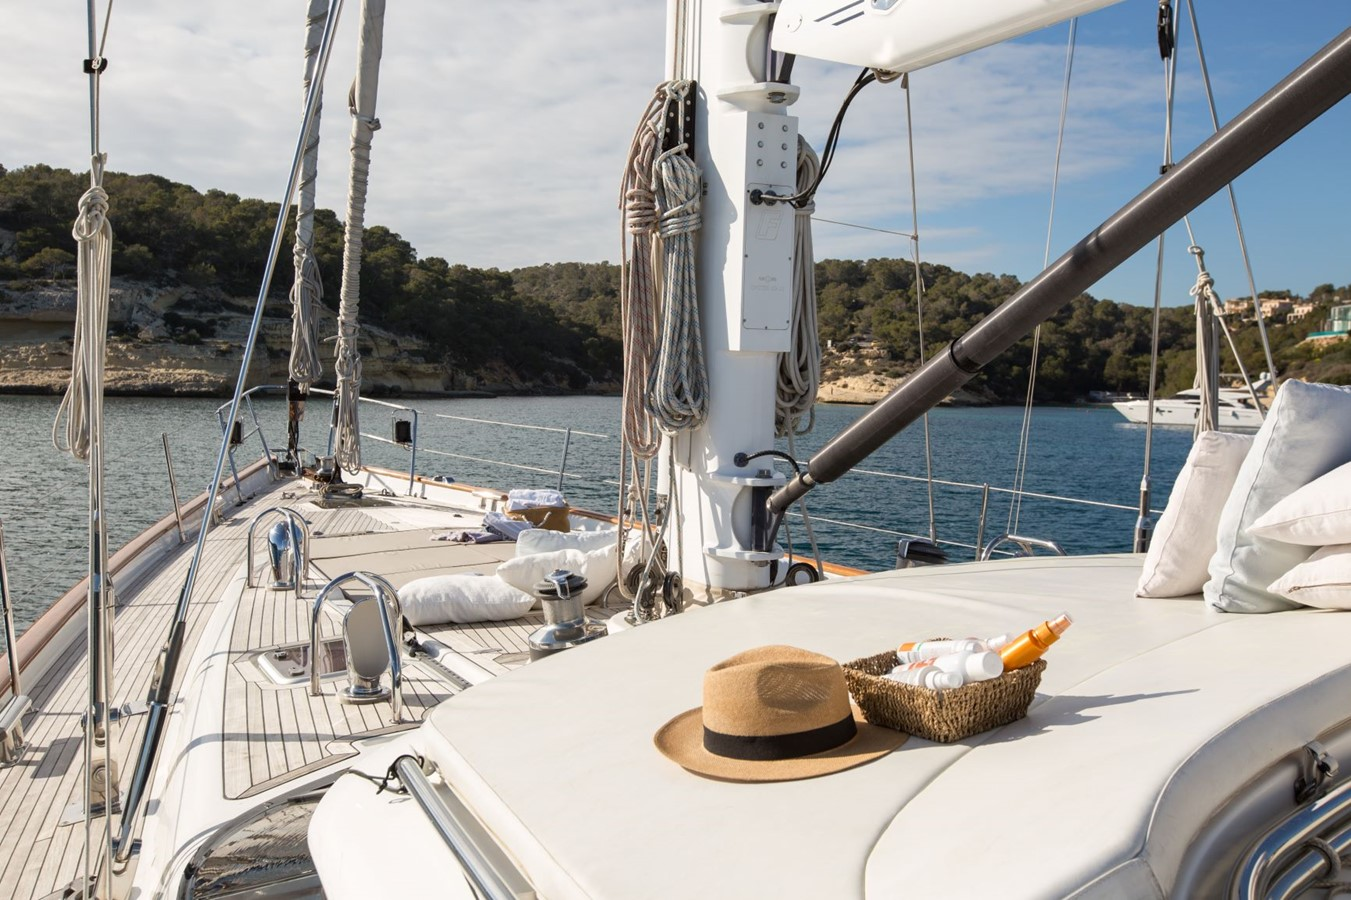 2010 OYSTER YACHTS Oyster 82 Cruising Sailboat 2485463